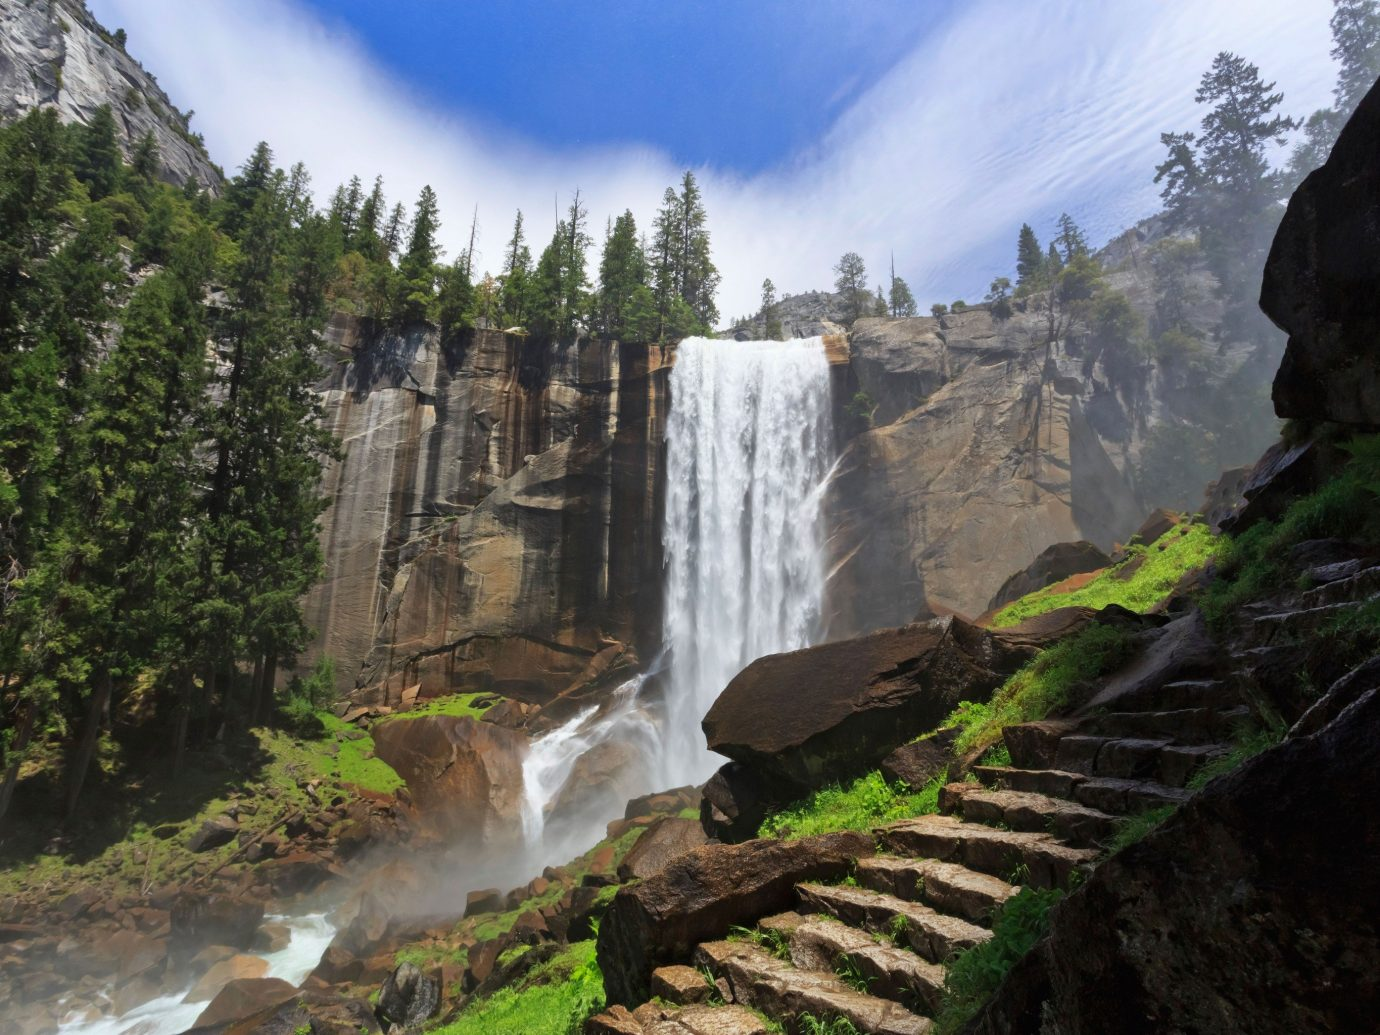 Health + Wellness Outdoors + Adventure tree outdoor sky Nature Waterfall mountain wilderness body of water geological phenomenon water feature valley mountain range ravine Forest terrain cliff canyon national park hillside wood dirt surrounded